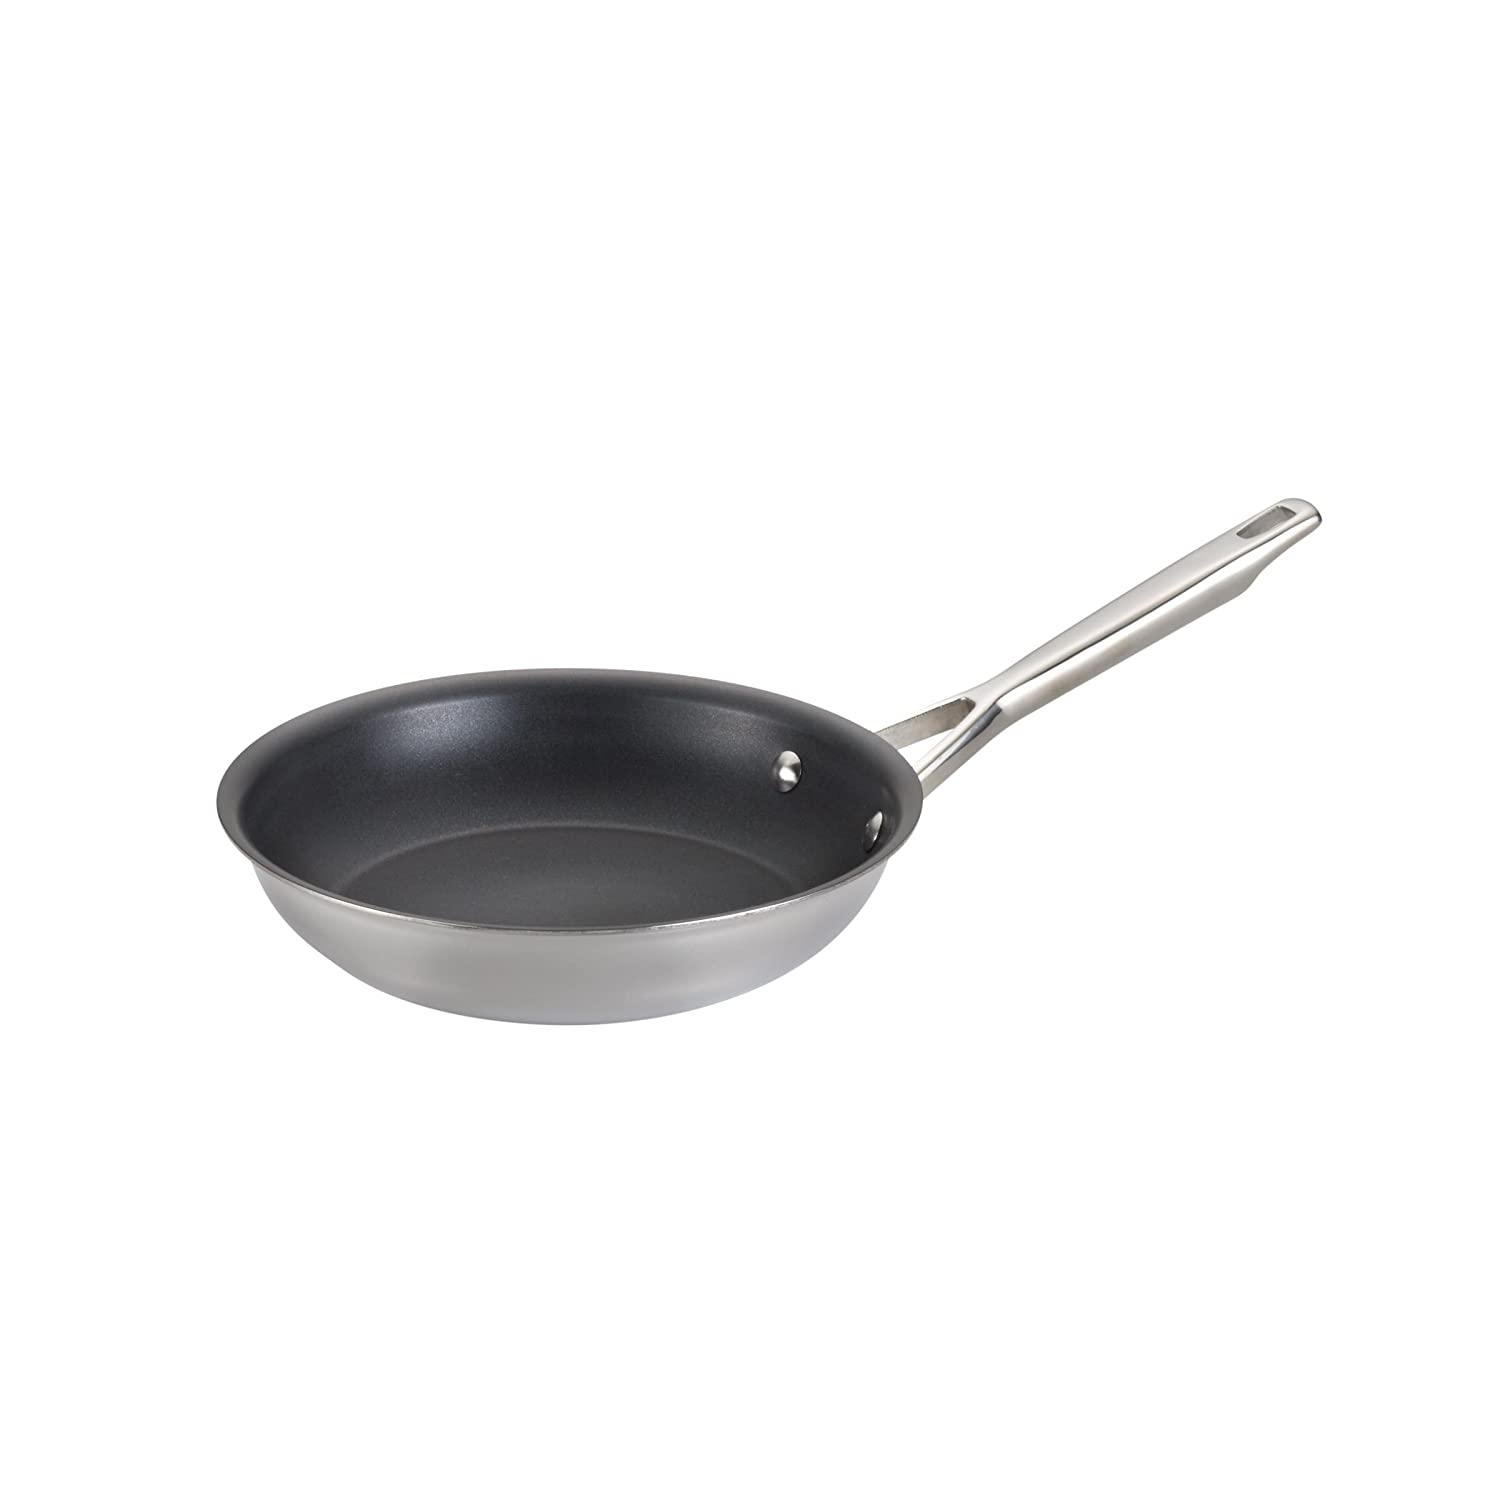 Anolon 31511 Triply Clad Stainless Steel Nonstick Frying Pan//Fry Pan//Stainless Steel Skillet 8.5 Inch Silver